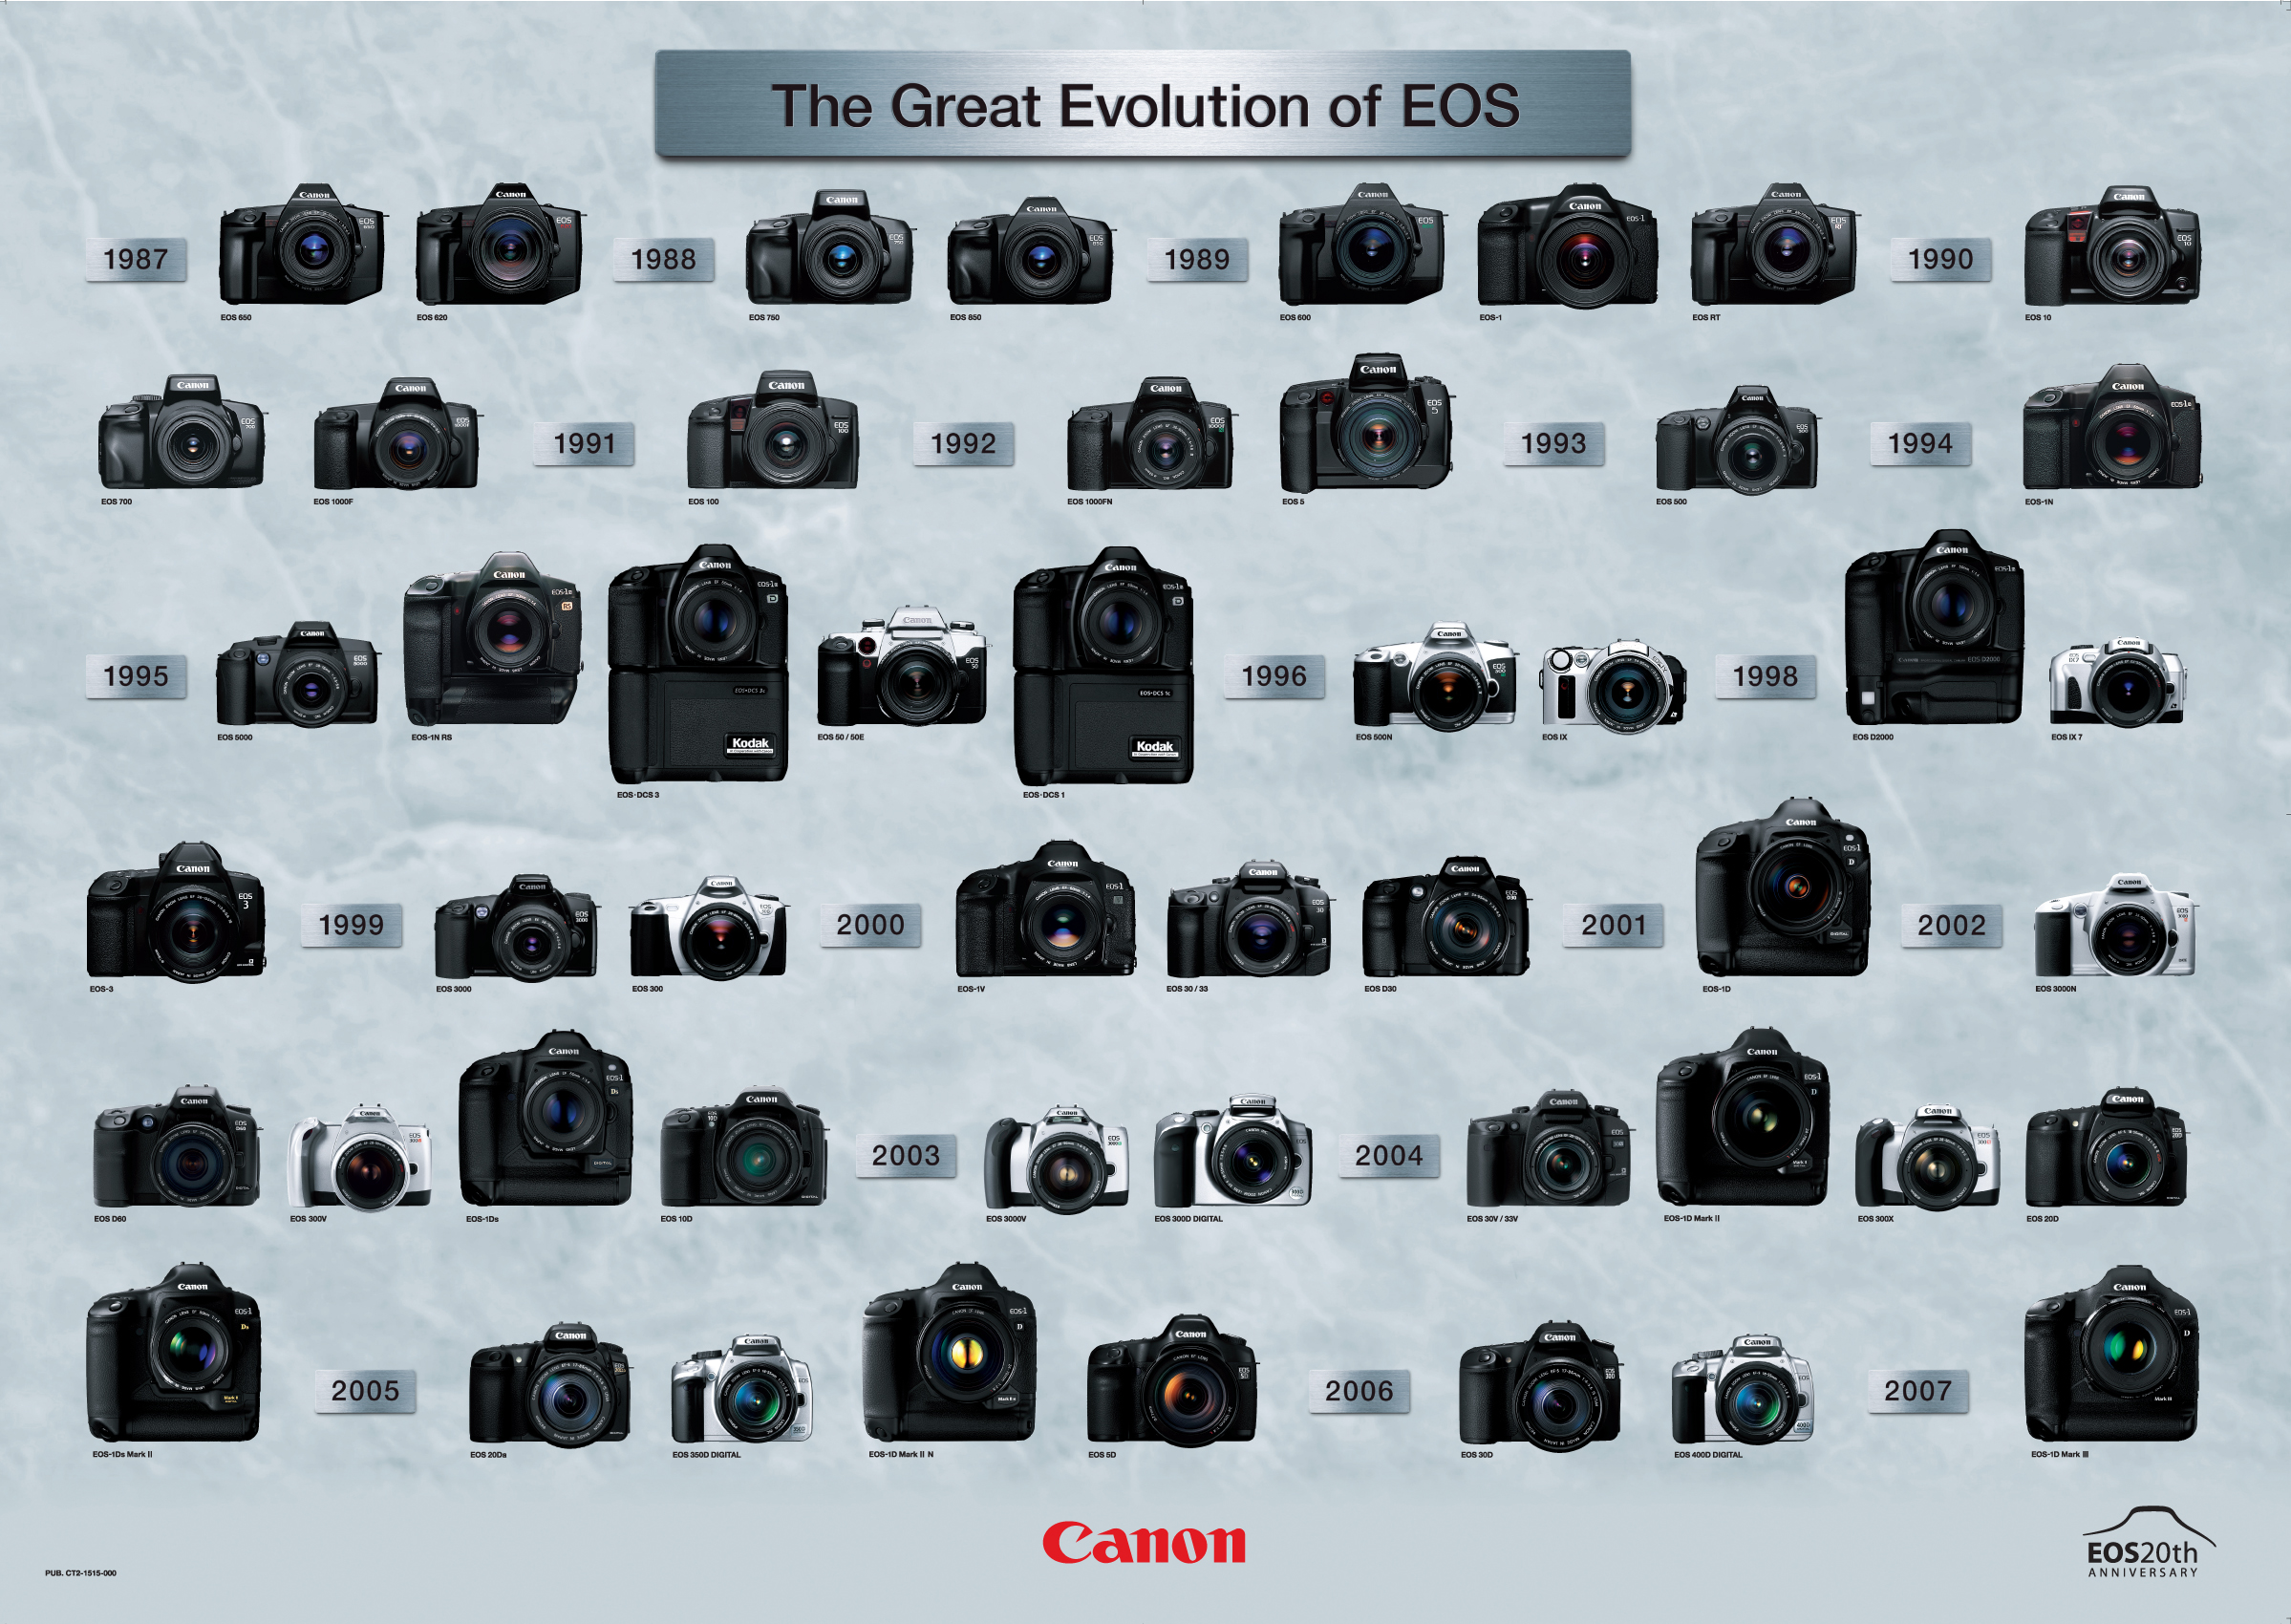 Canon EOS Evolution